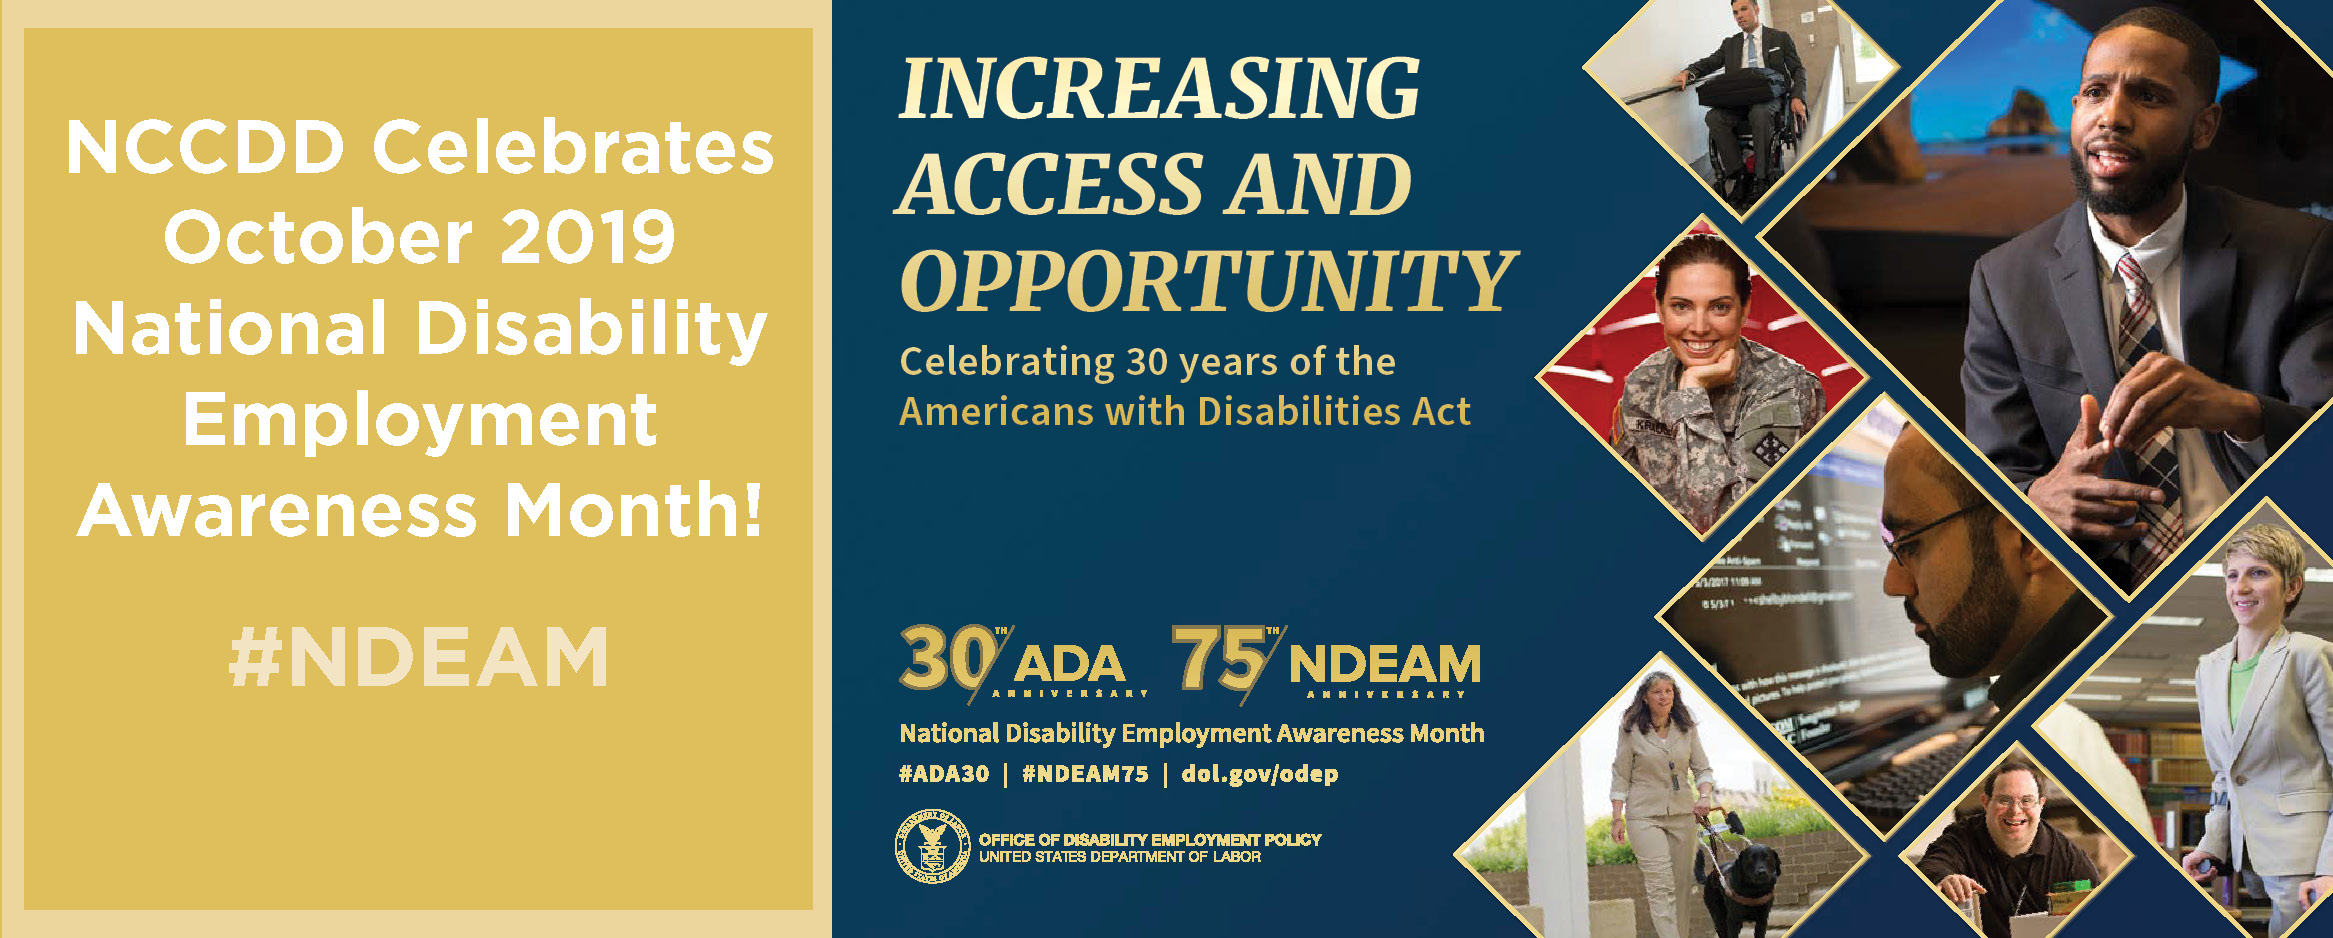 NCCDD celebrates National Disability Employment Awareness Month in October